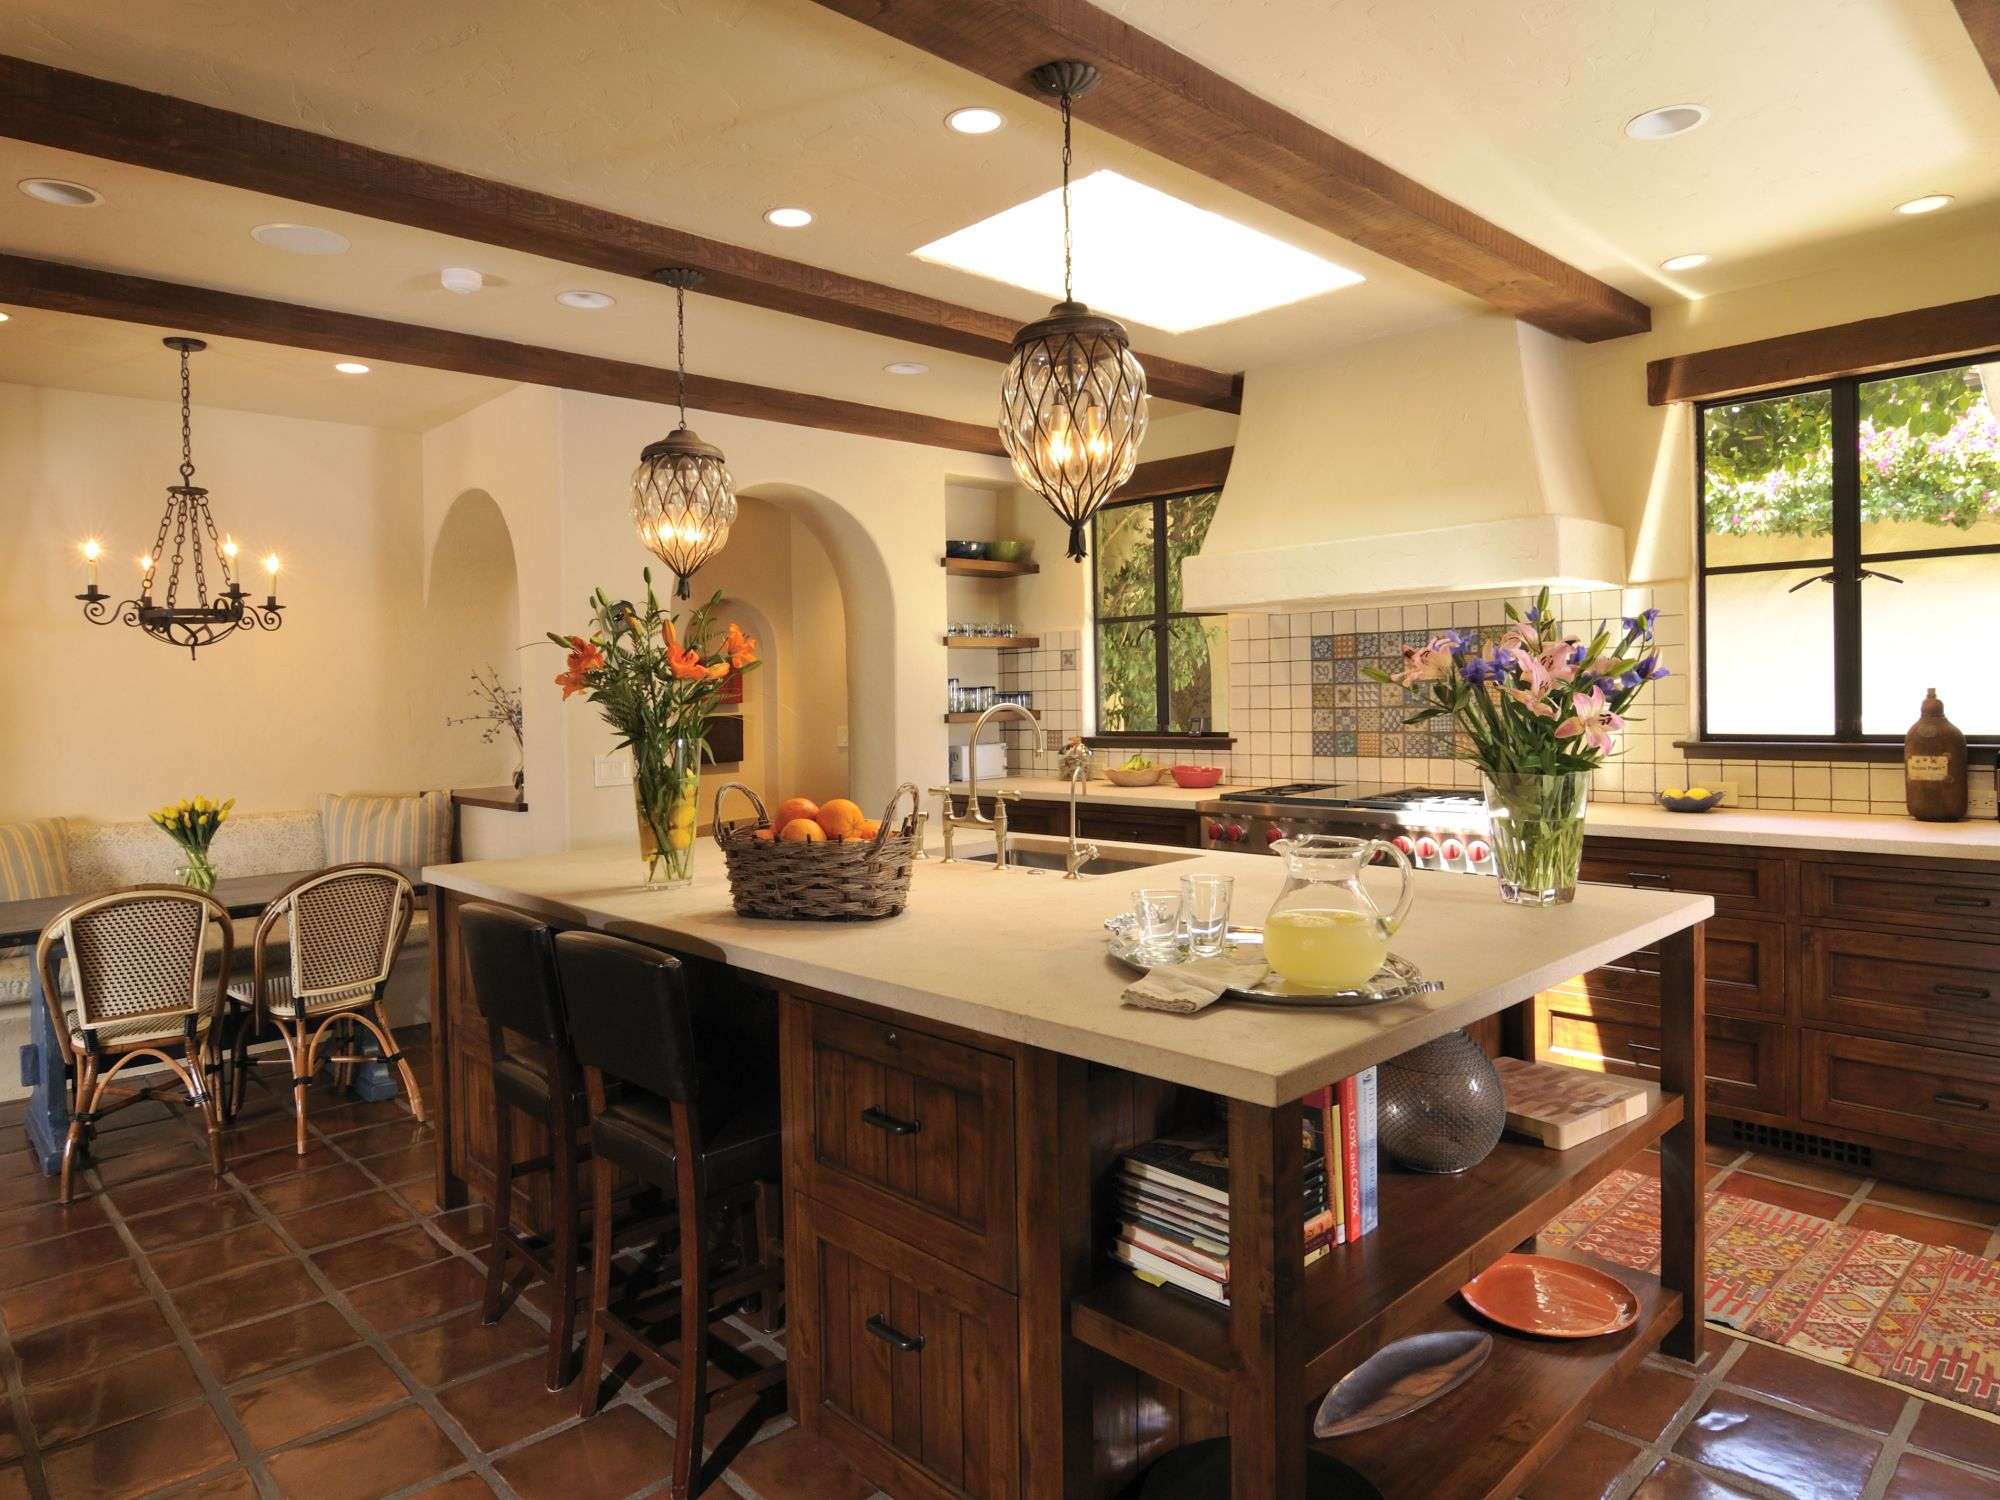 Spanish Revival Style Kitchen Remodel With Terracotta Floors, Dark Wood  Cabinets, Plaster Hood, Tiled Walls, Wood Beams, Metal Windows.